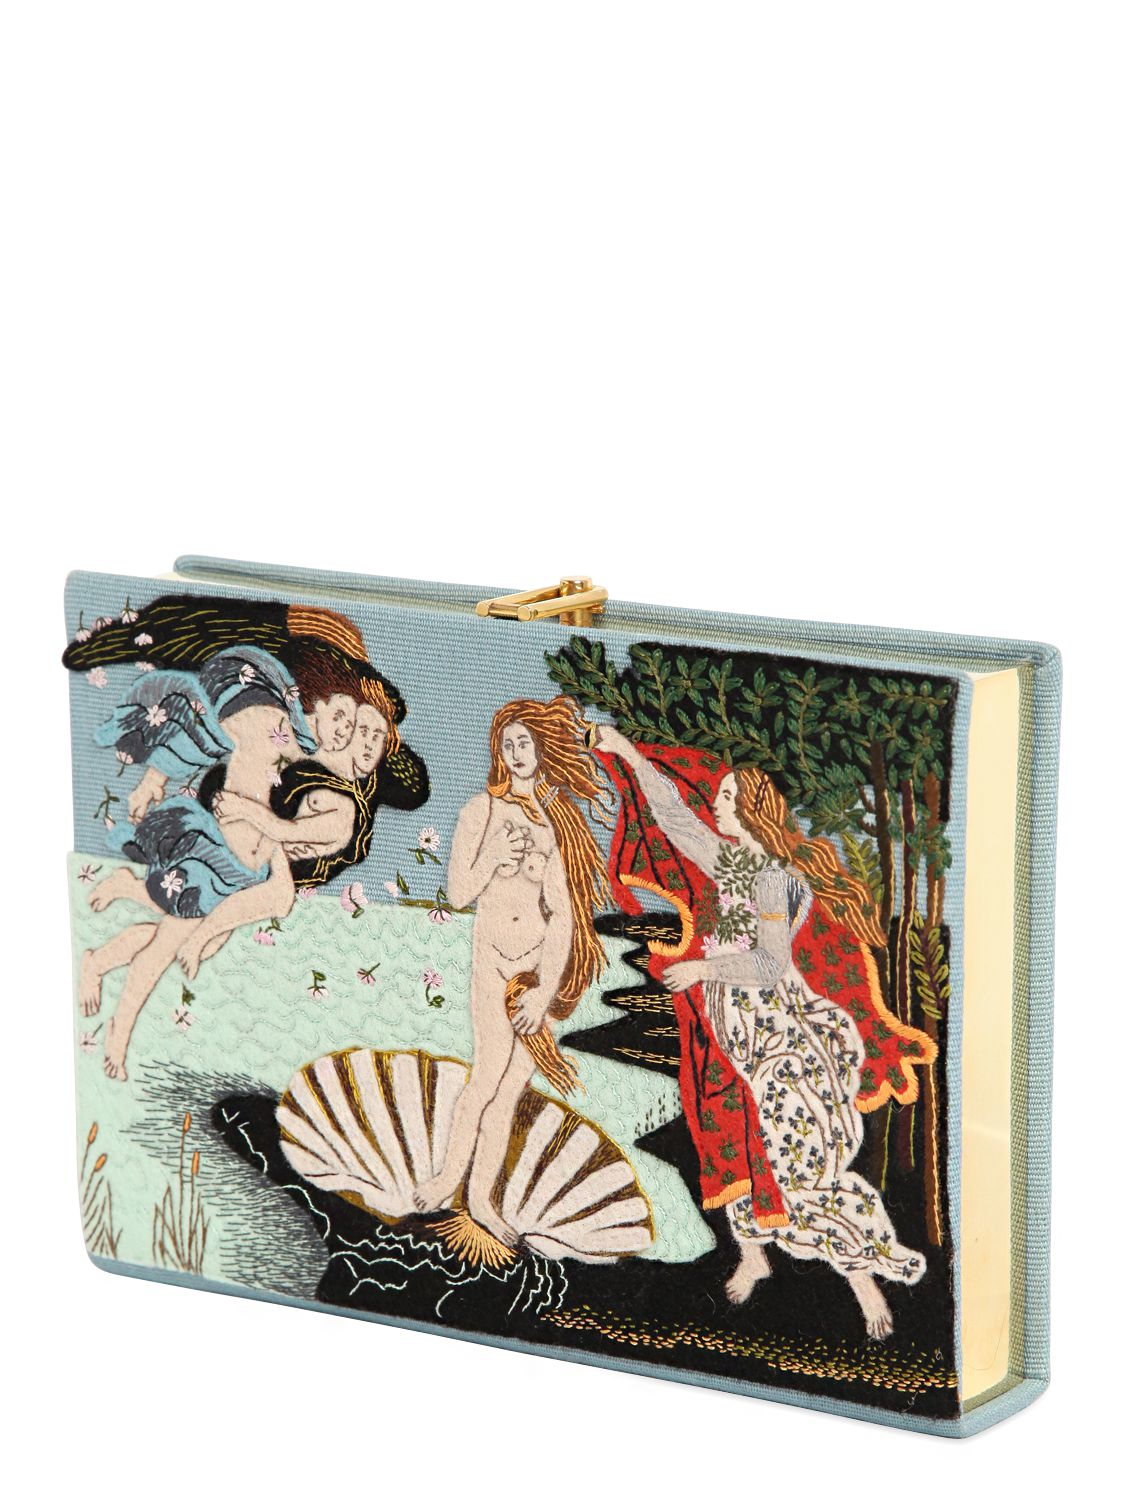 Olympia le-tan Botticelli Embroidered Book Clutch